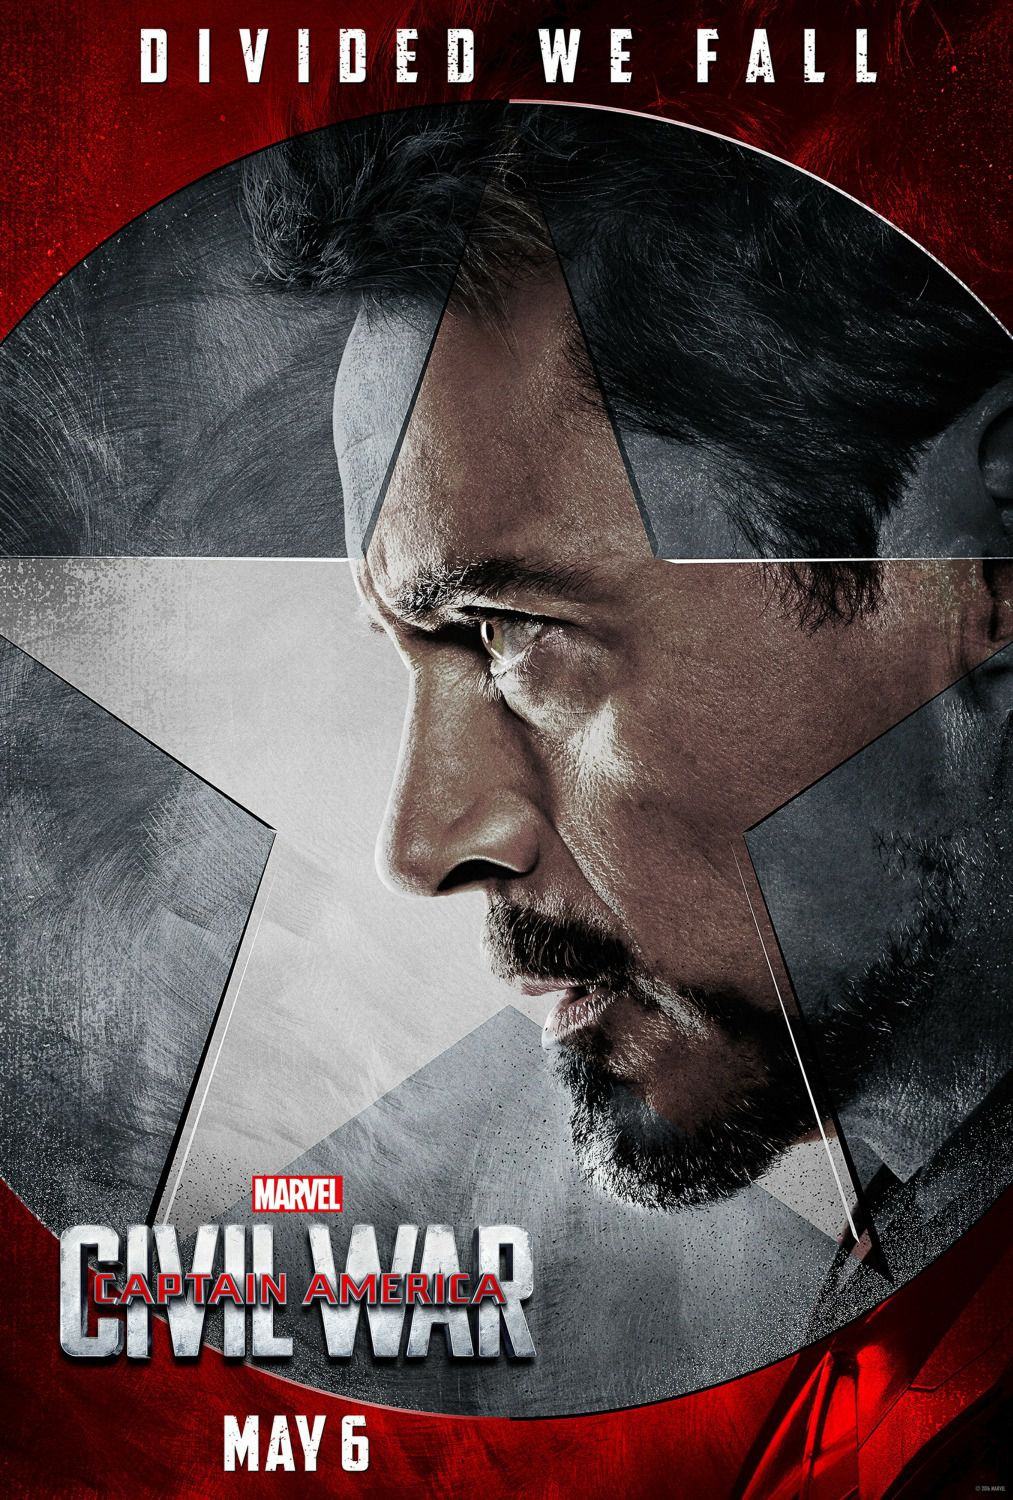 Captain America 3 - Civil War - Capitan America - Tony Stark - Iron Man (Robert Downey Jr.) - Iron Man